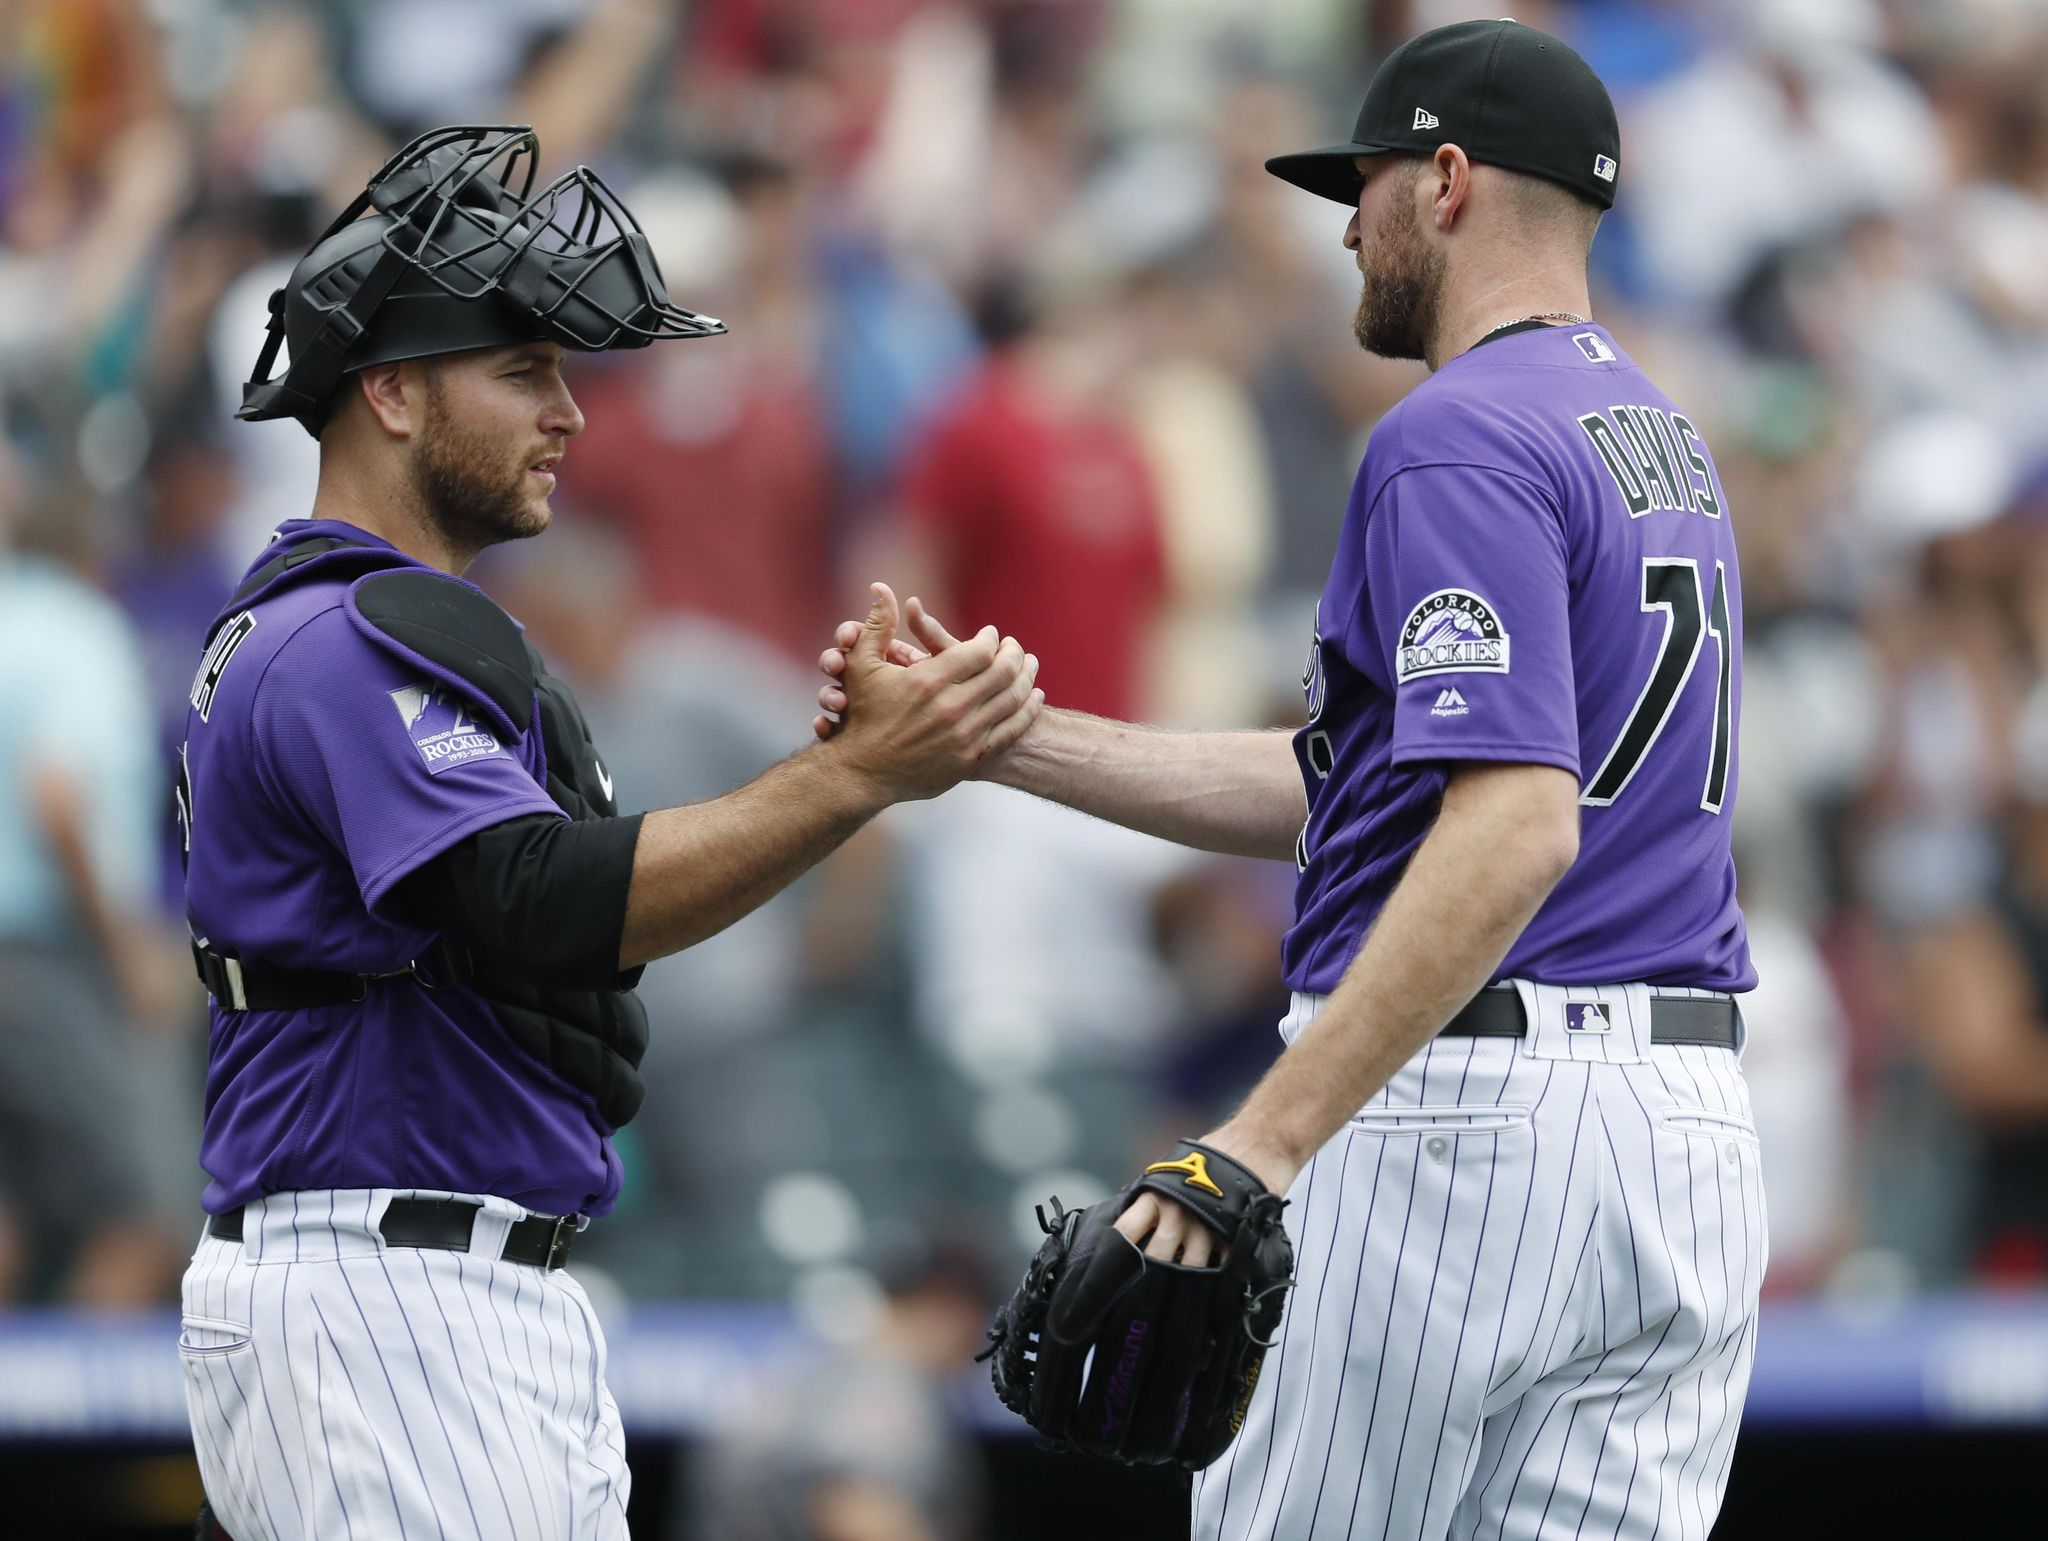 Diamondbacks_rockies_baseball_69399_s2048x1541